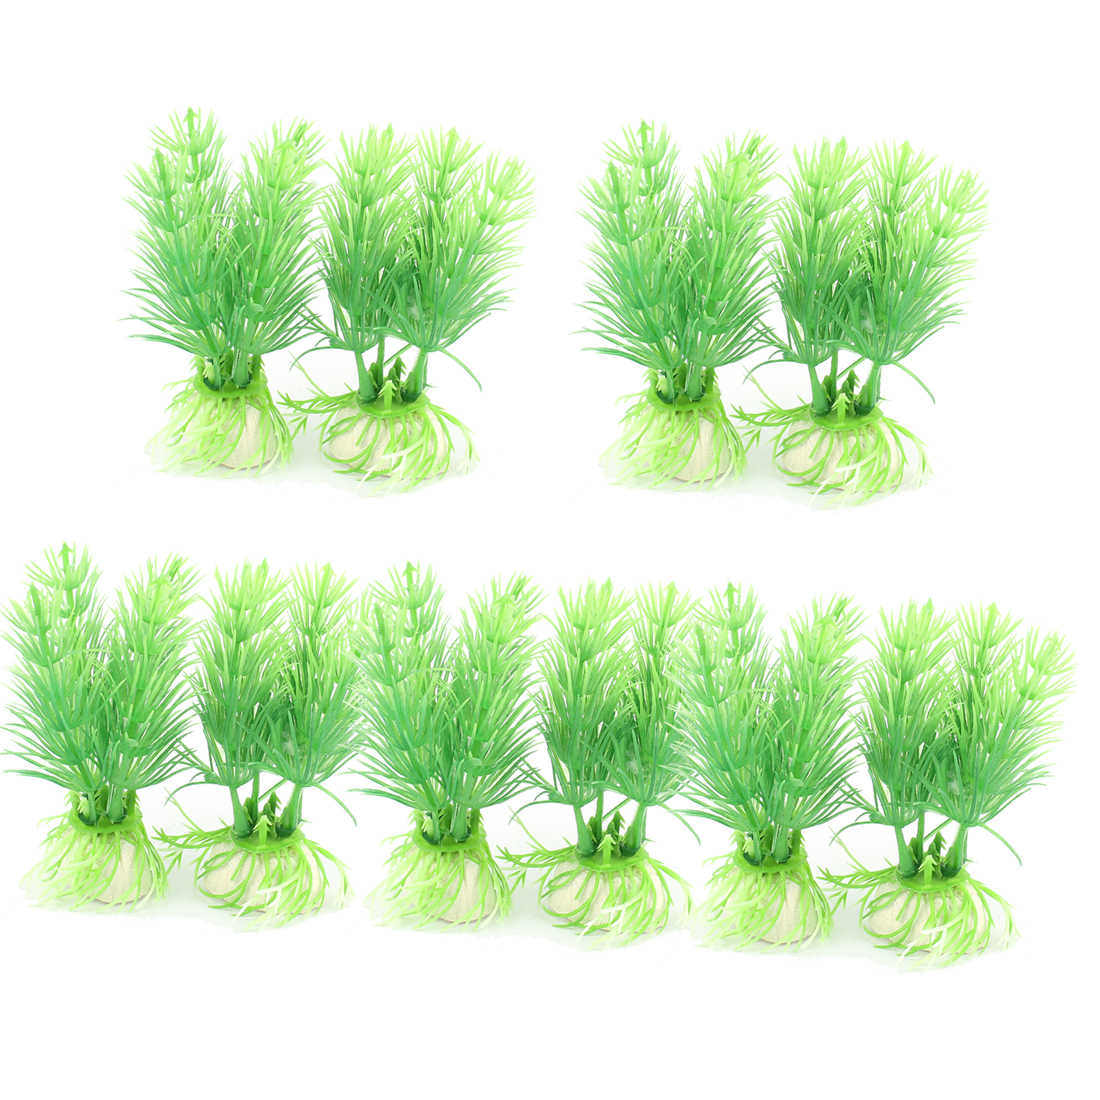 10pcs Green Ceramic Base Plastic Aquarium Plant Water Grass Ornament for Fishbowl Fish Tank